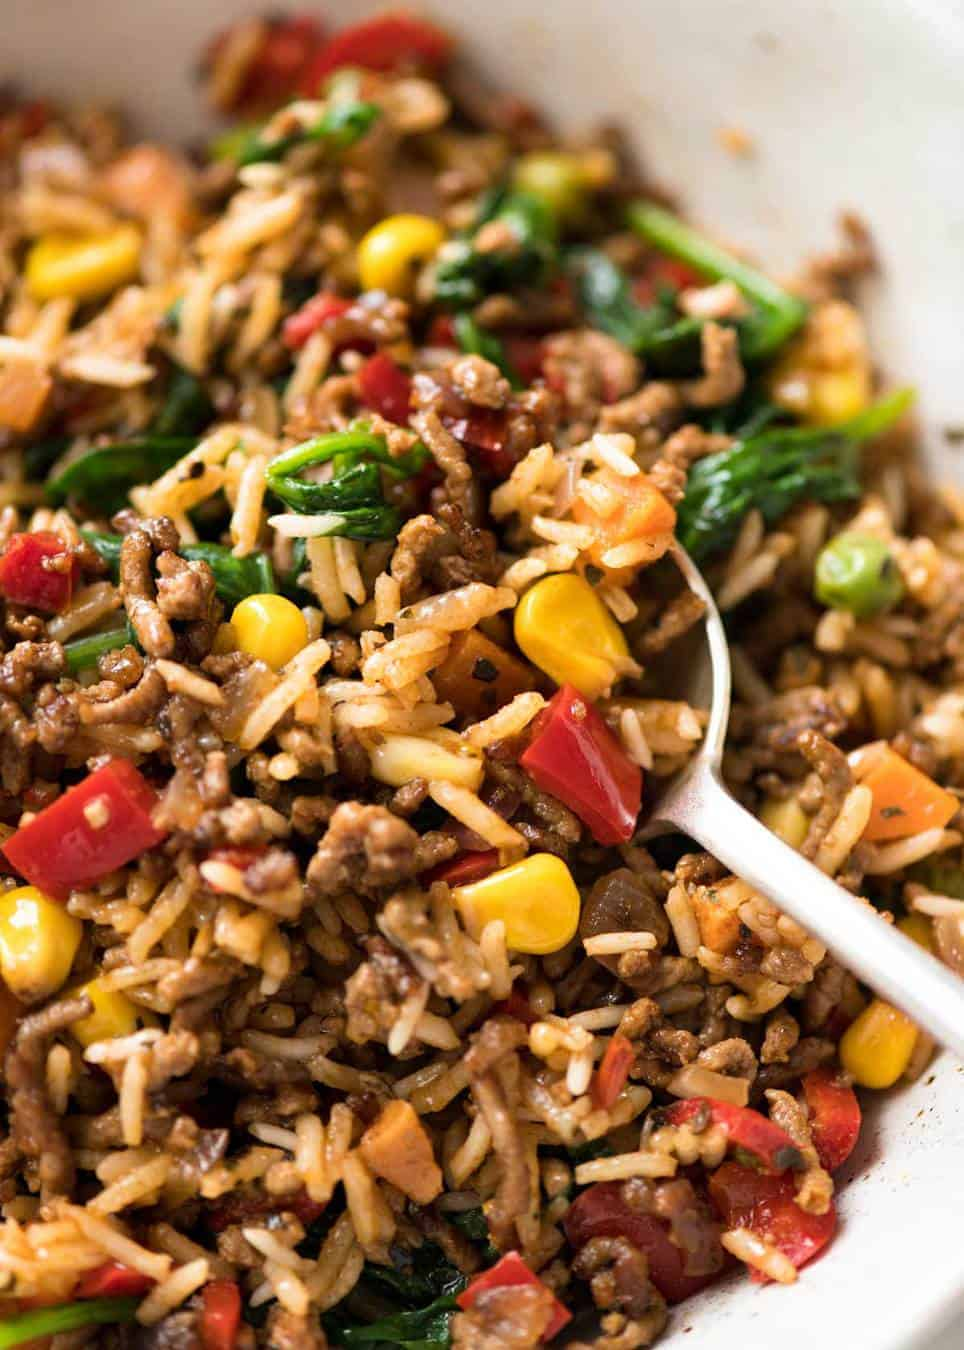 One Pot Ground Beef and Rice with loads of veggies - Browned beef cooked with seasoned rice and vegetables. A fast, super tasty complete meal! recipetineats.com